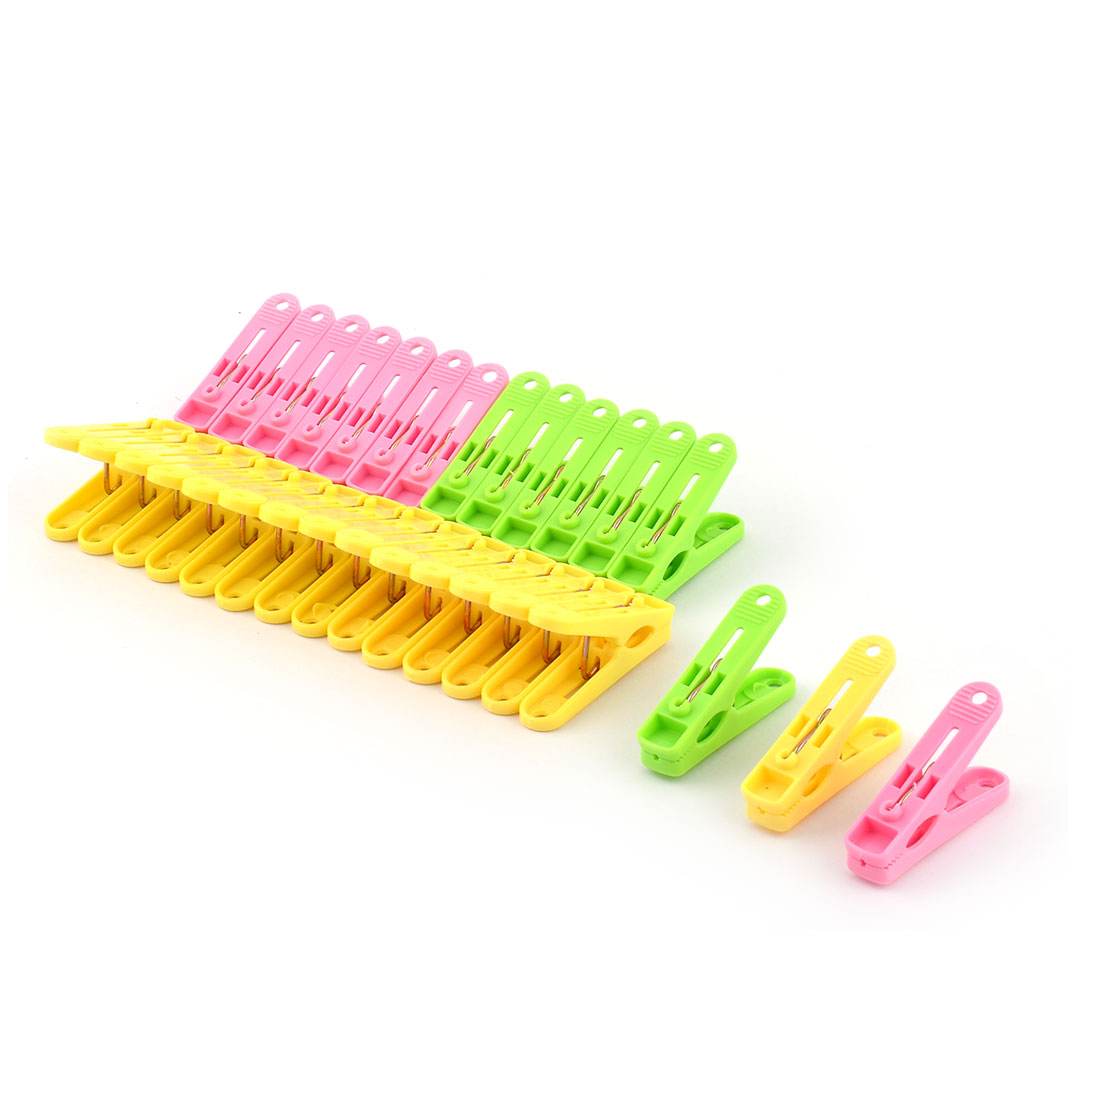 Plastic Laundry Towels Clothes Socks Underwears Hanging Peg Clip Clothespin 30Pcs